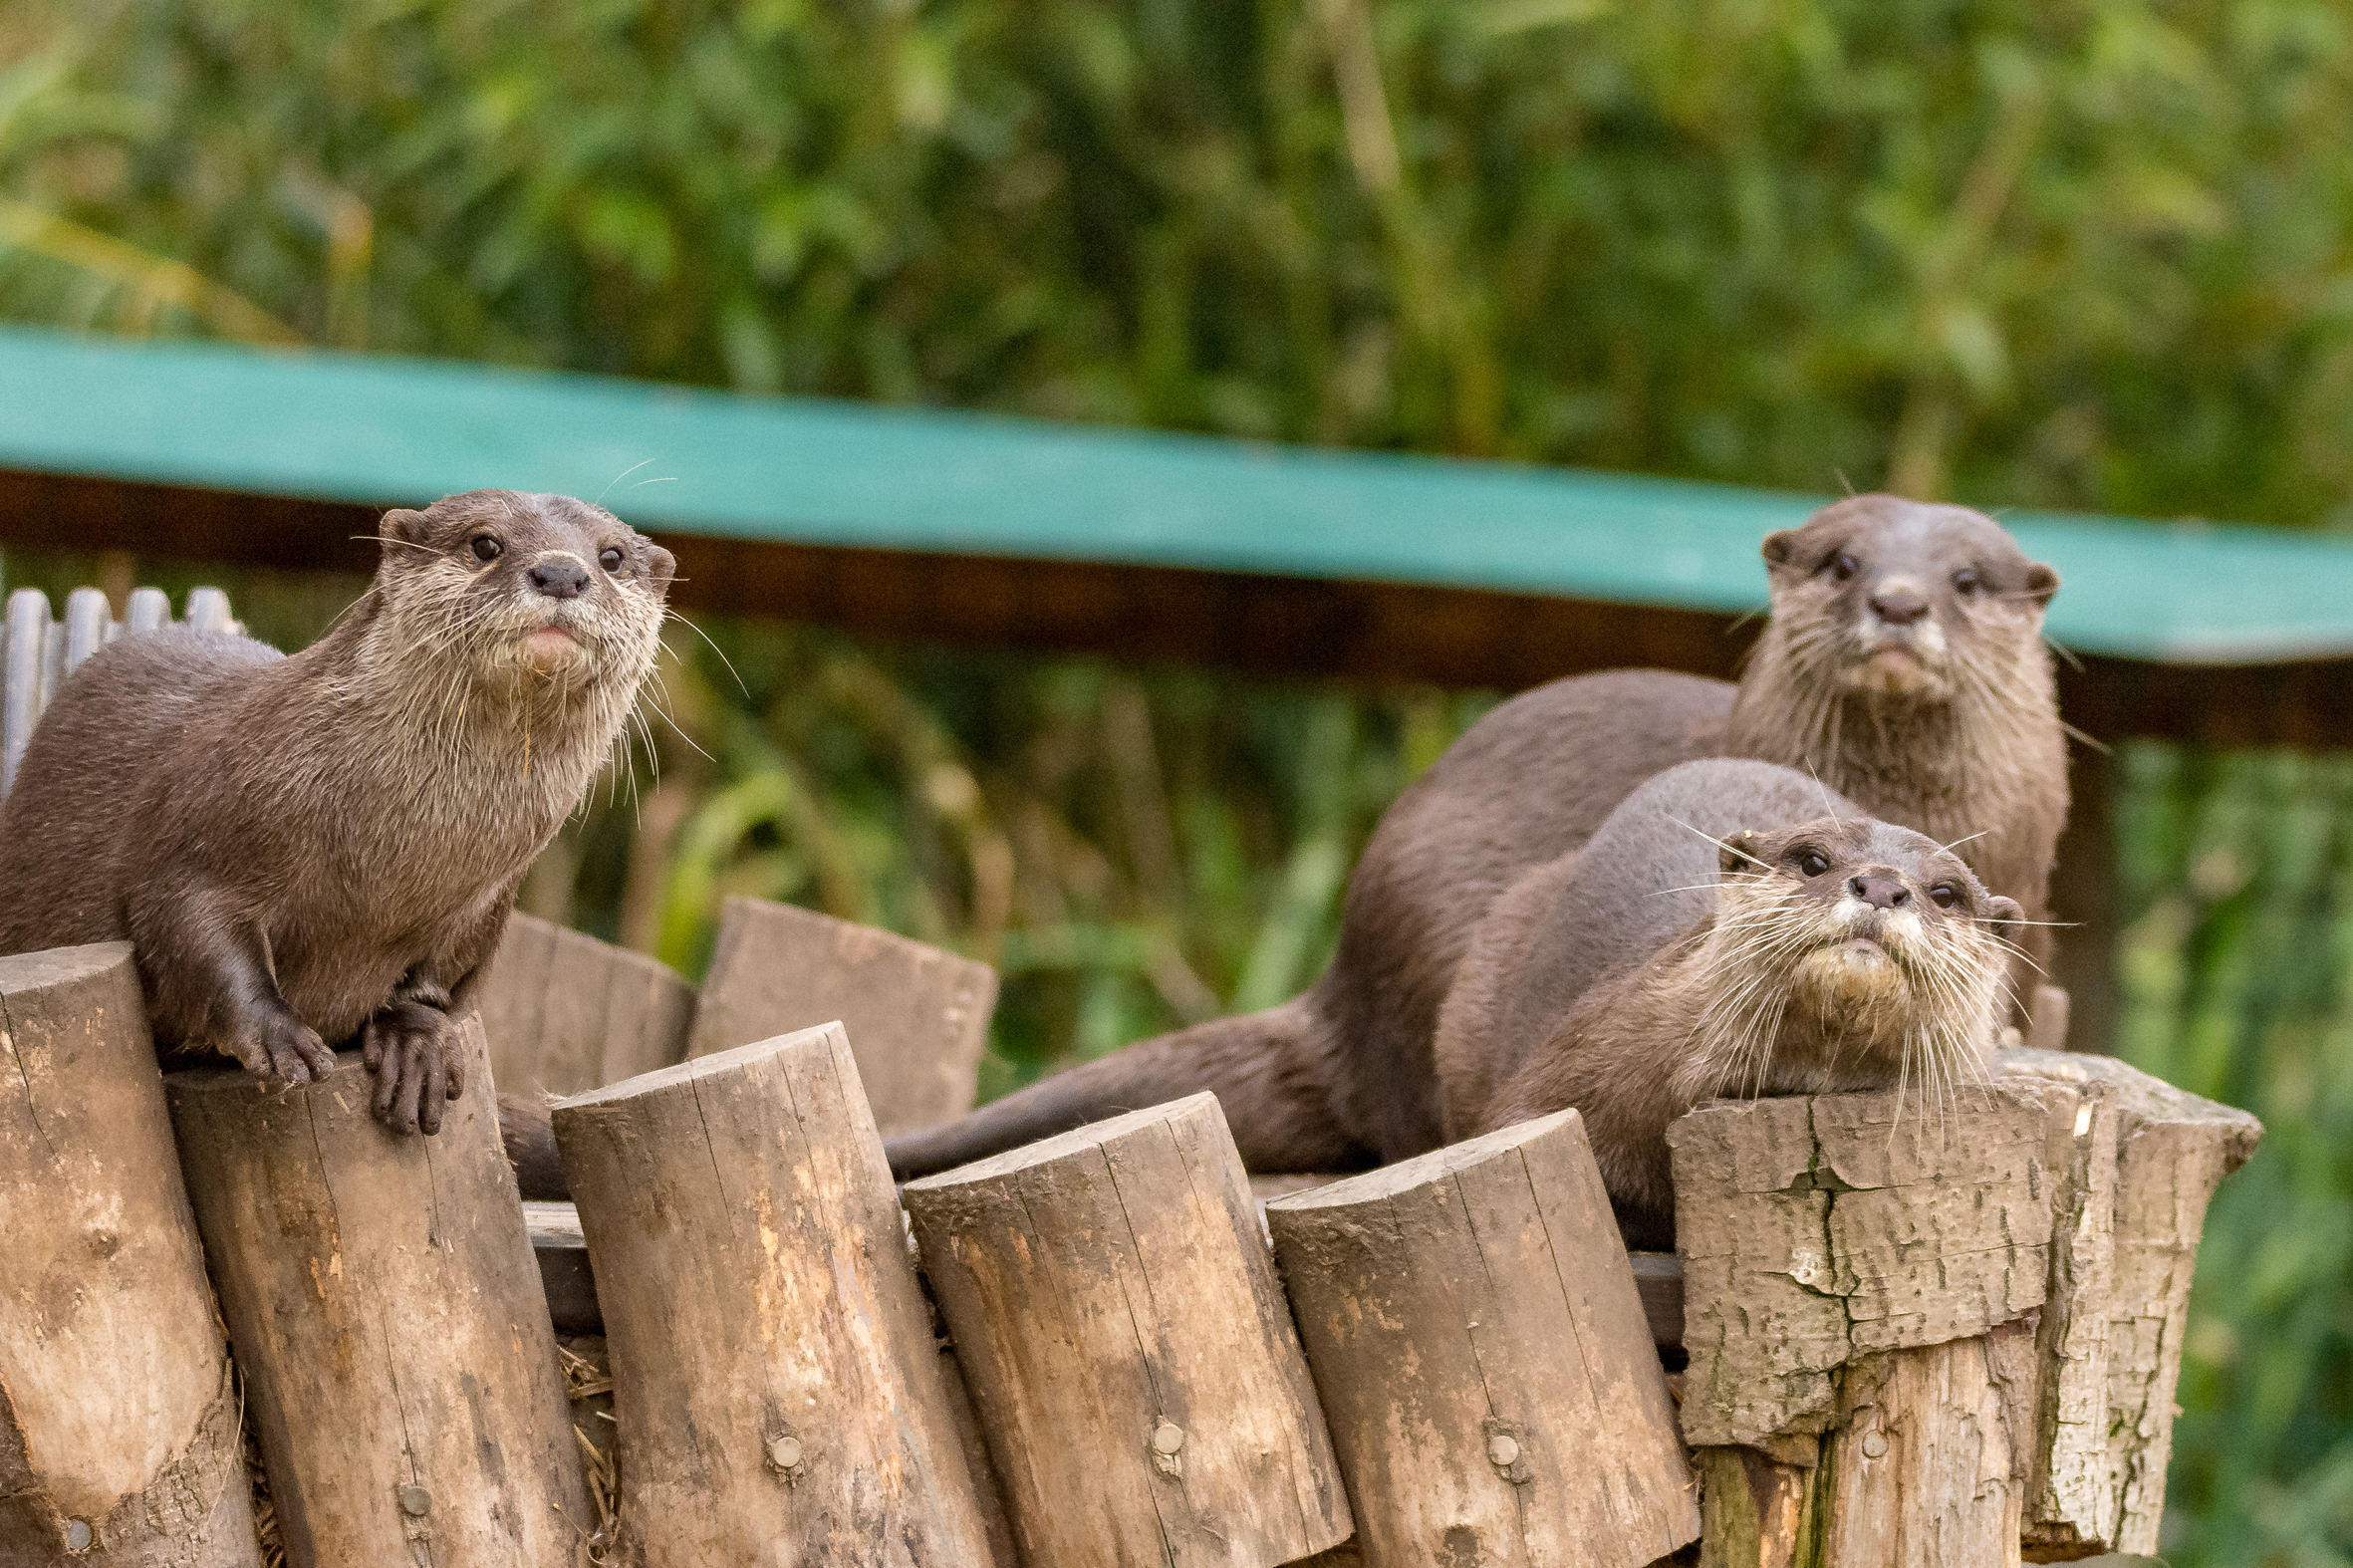 View: Daily otter feed